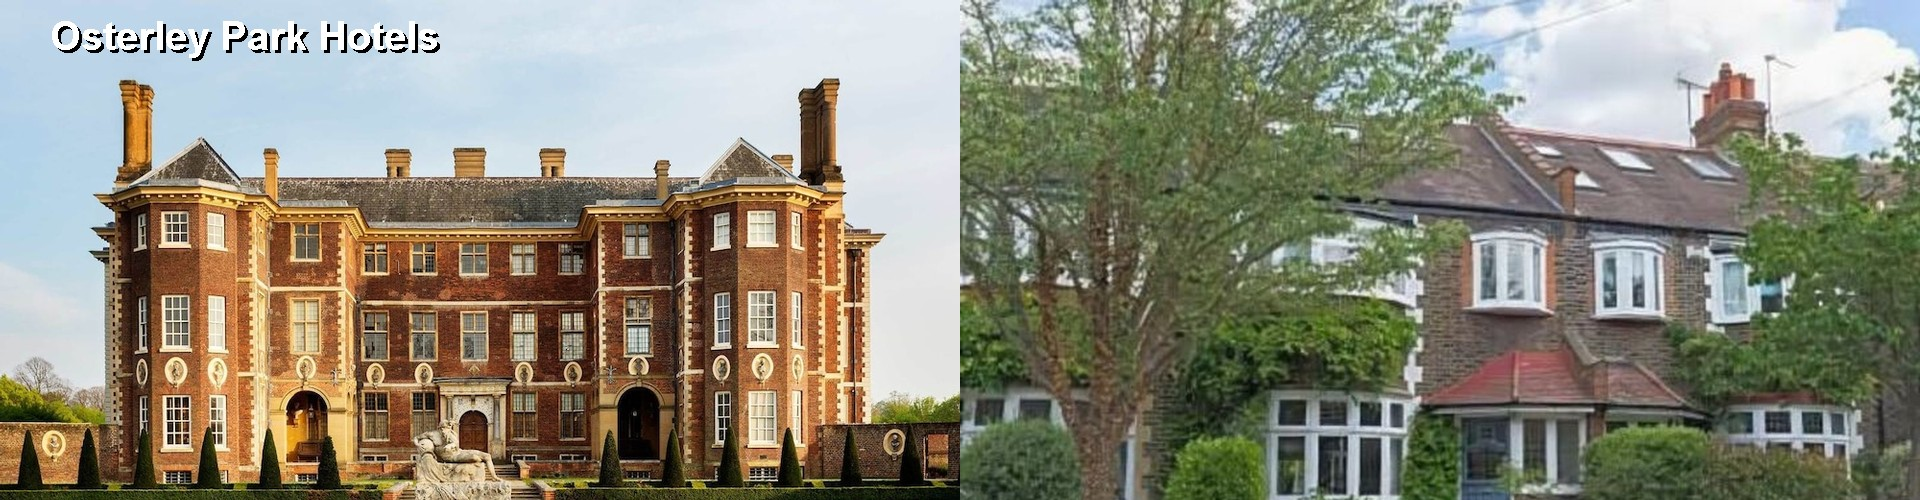 3 Best Hotels near Osterley Park